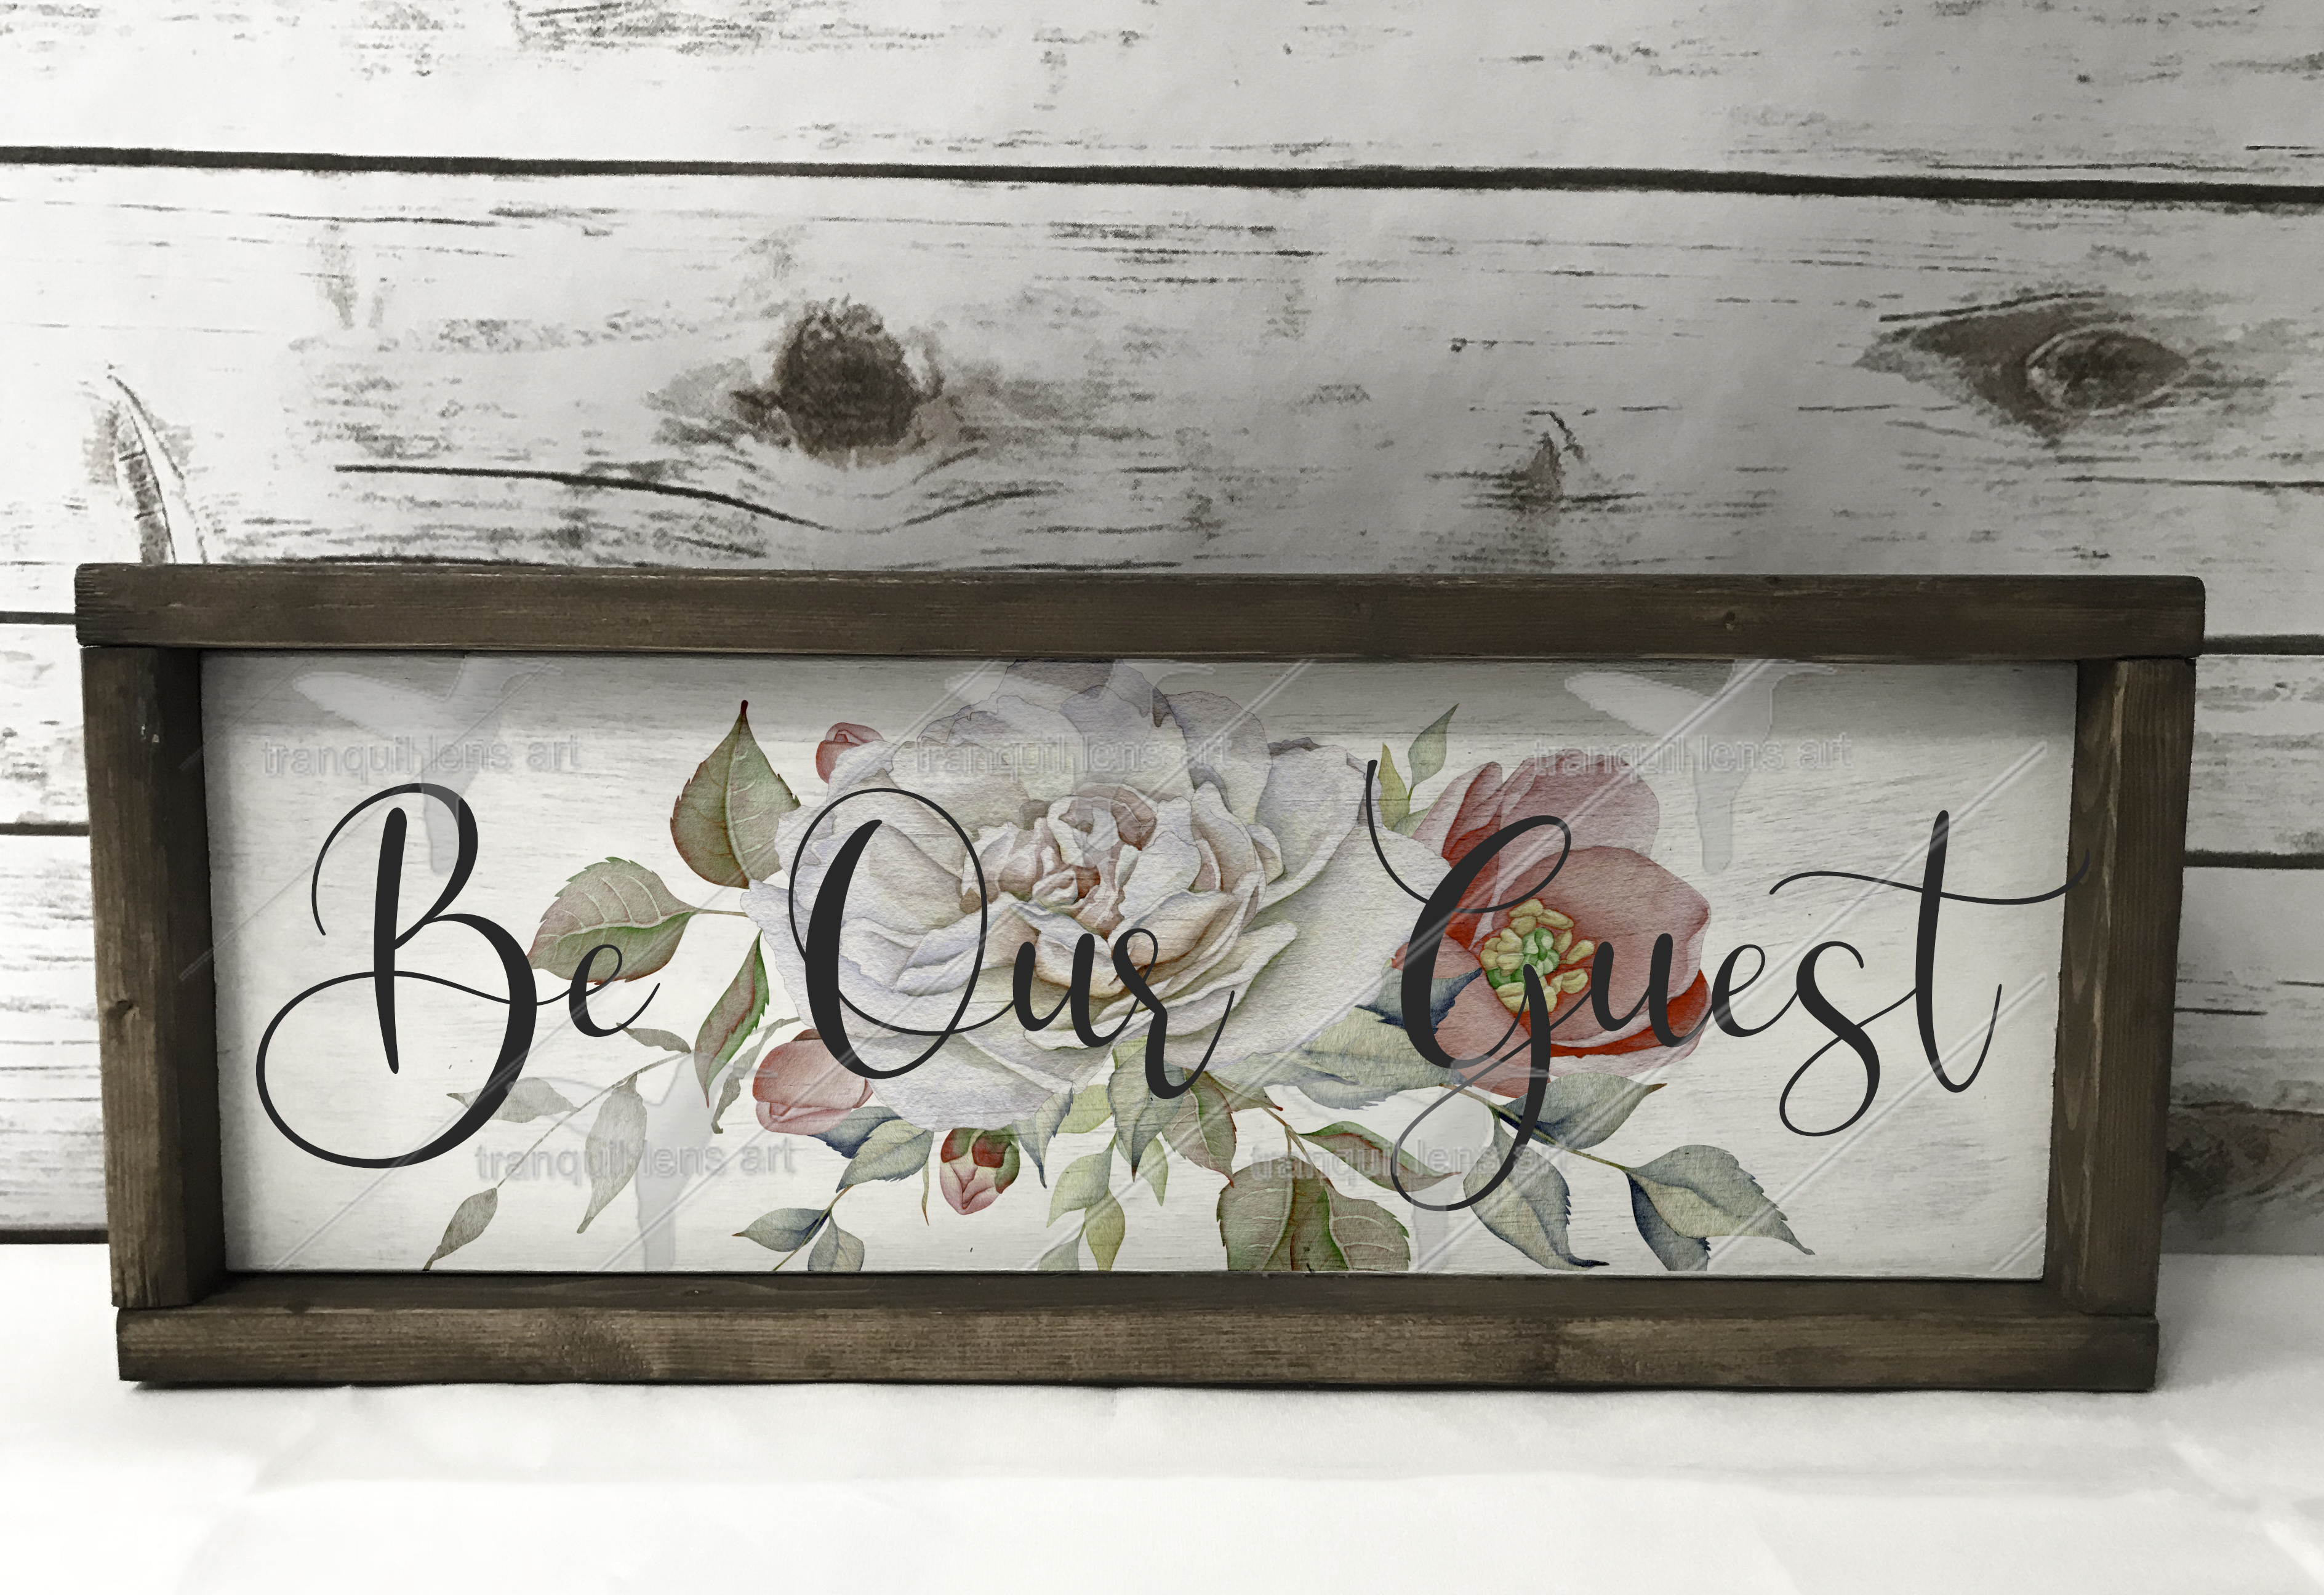 Download Free Be Our Guest Printable Art Graphic By Tranquil Lens Art for Cricut Explore, Silhouette and other cutting machines.